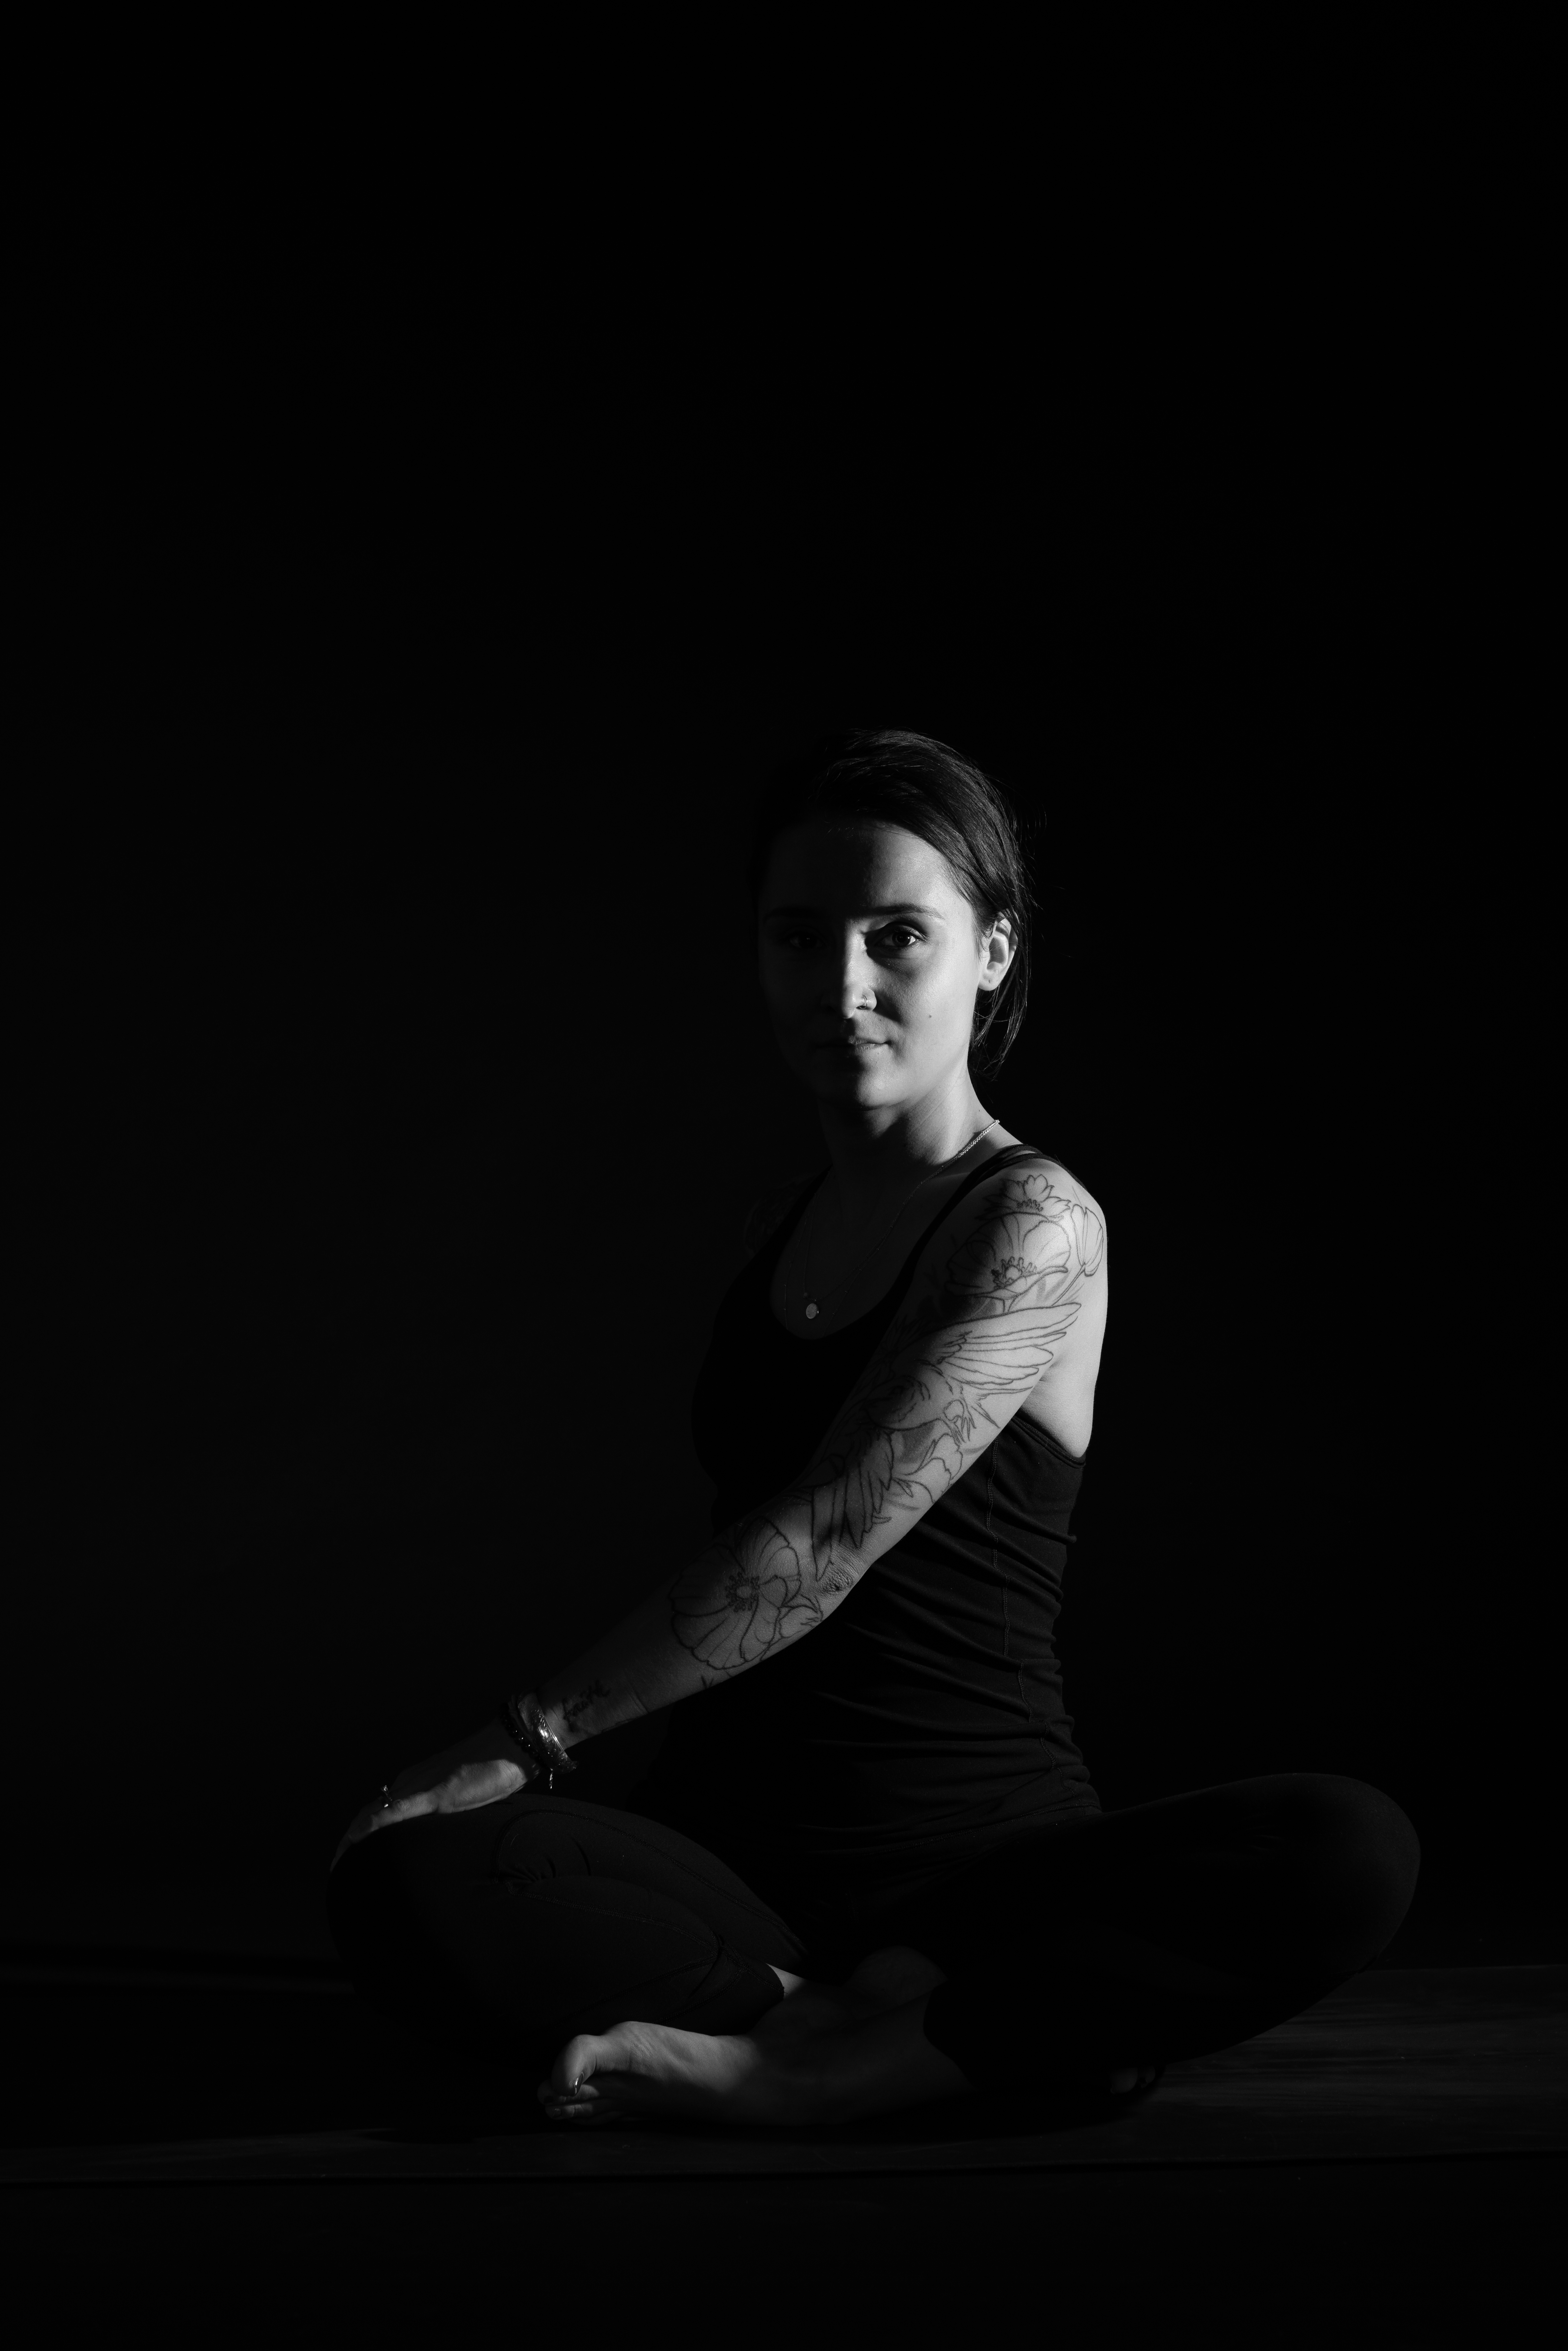 Paula yoga black & white photograph